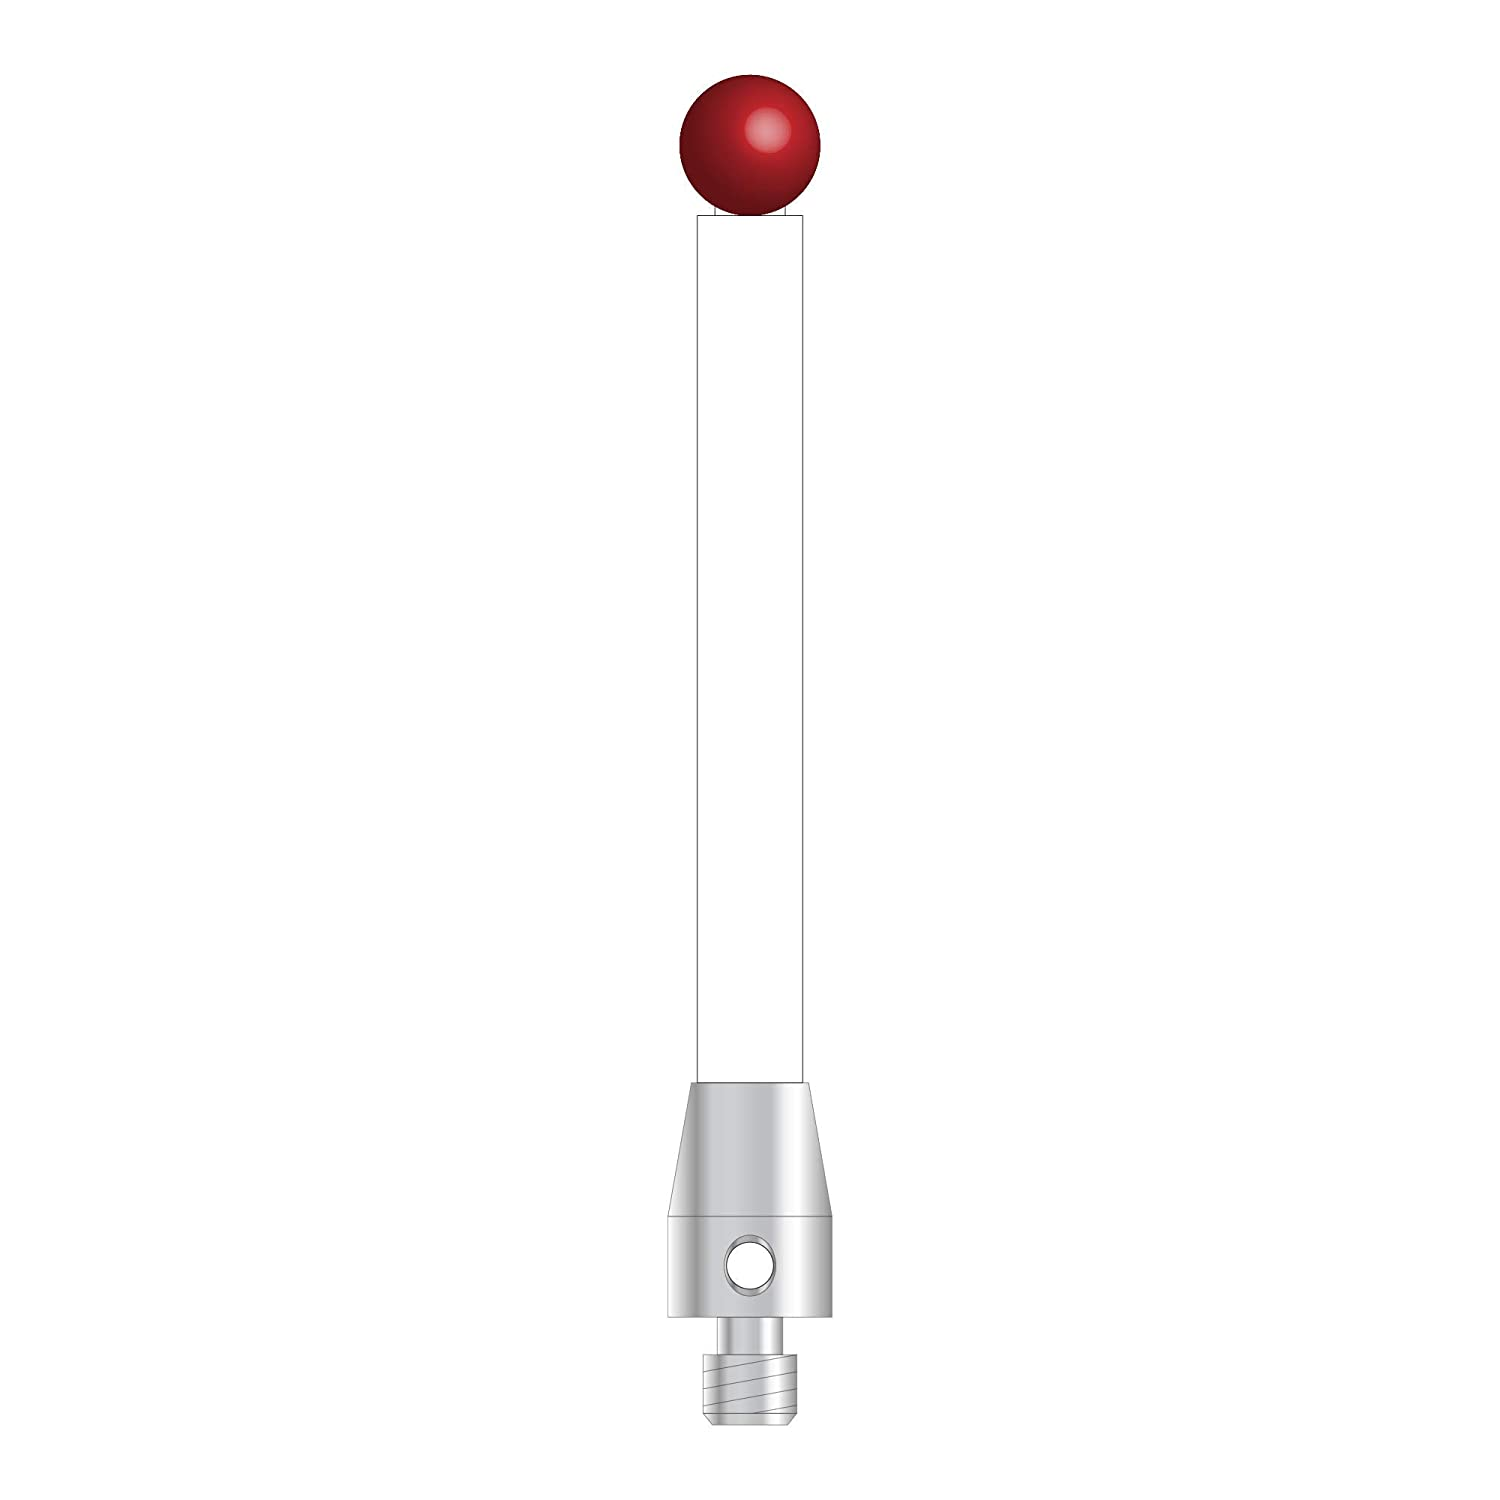 NEW before selling TM4-6053-C - M4 Stylus with 6.0 Ceramic Al sold out. Ball stem Ruby and mm